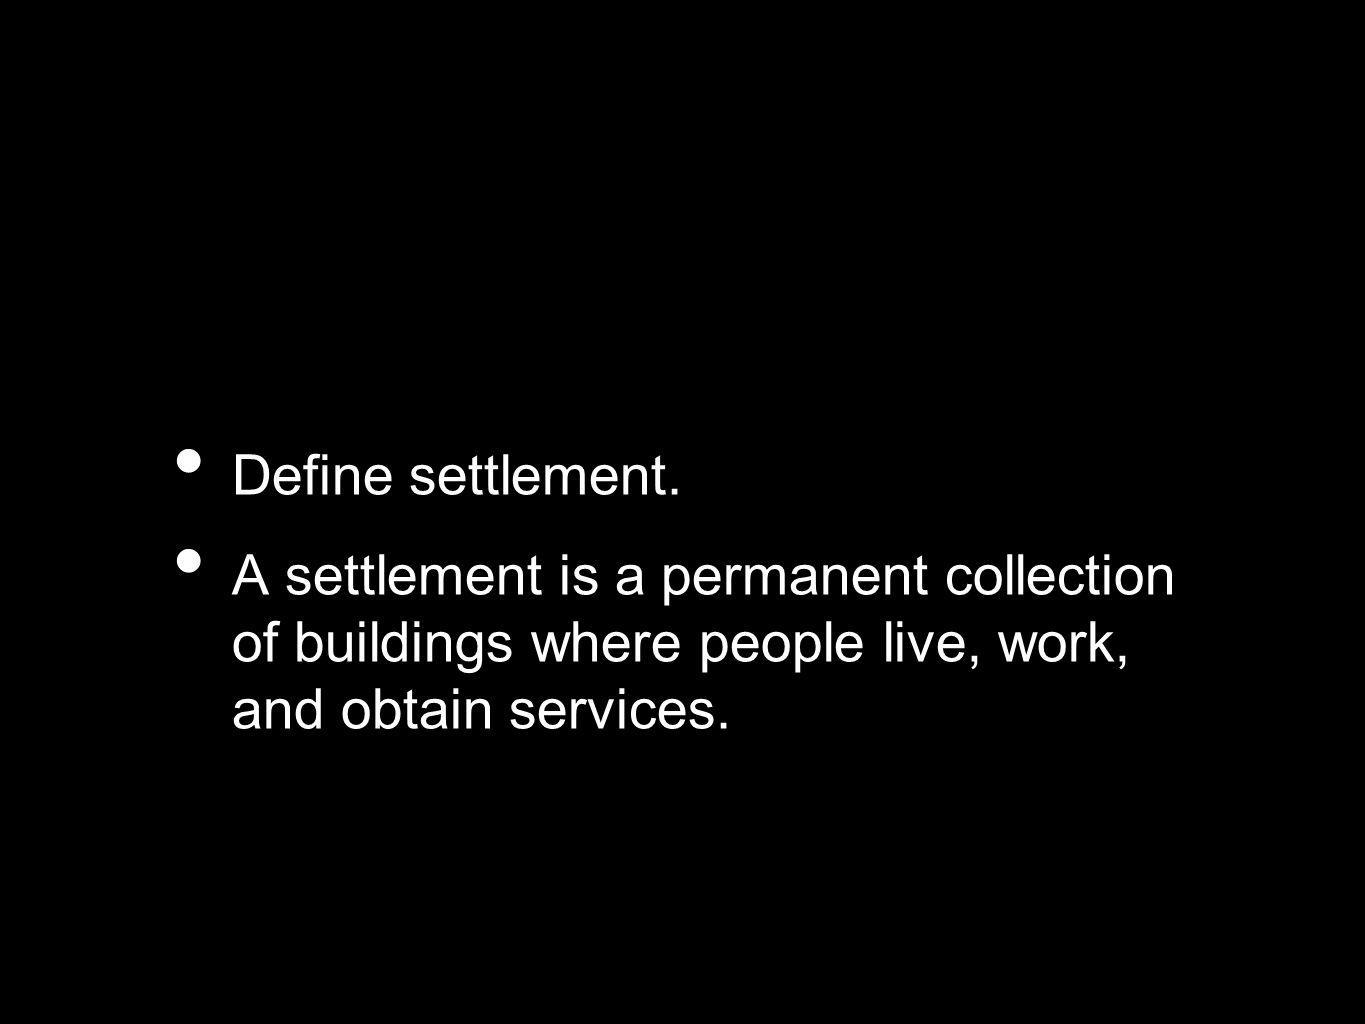 Define settlement.A settlement is a permanent collection of buildings where people live, work, and obtain services.